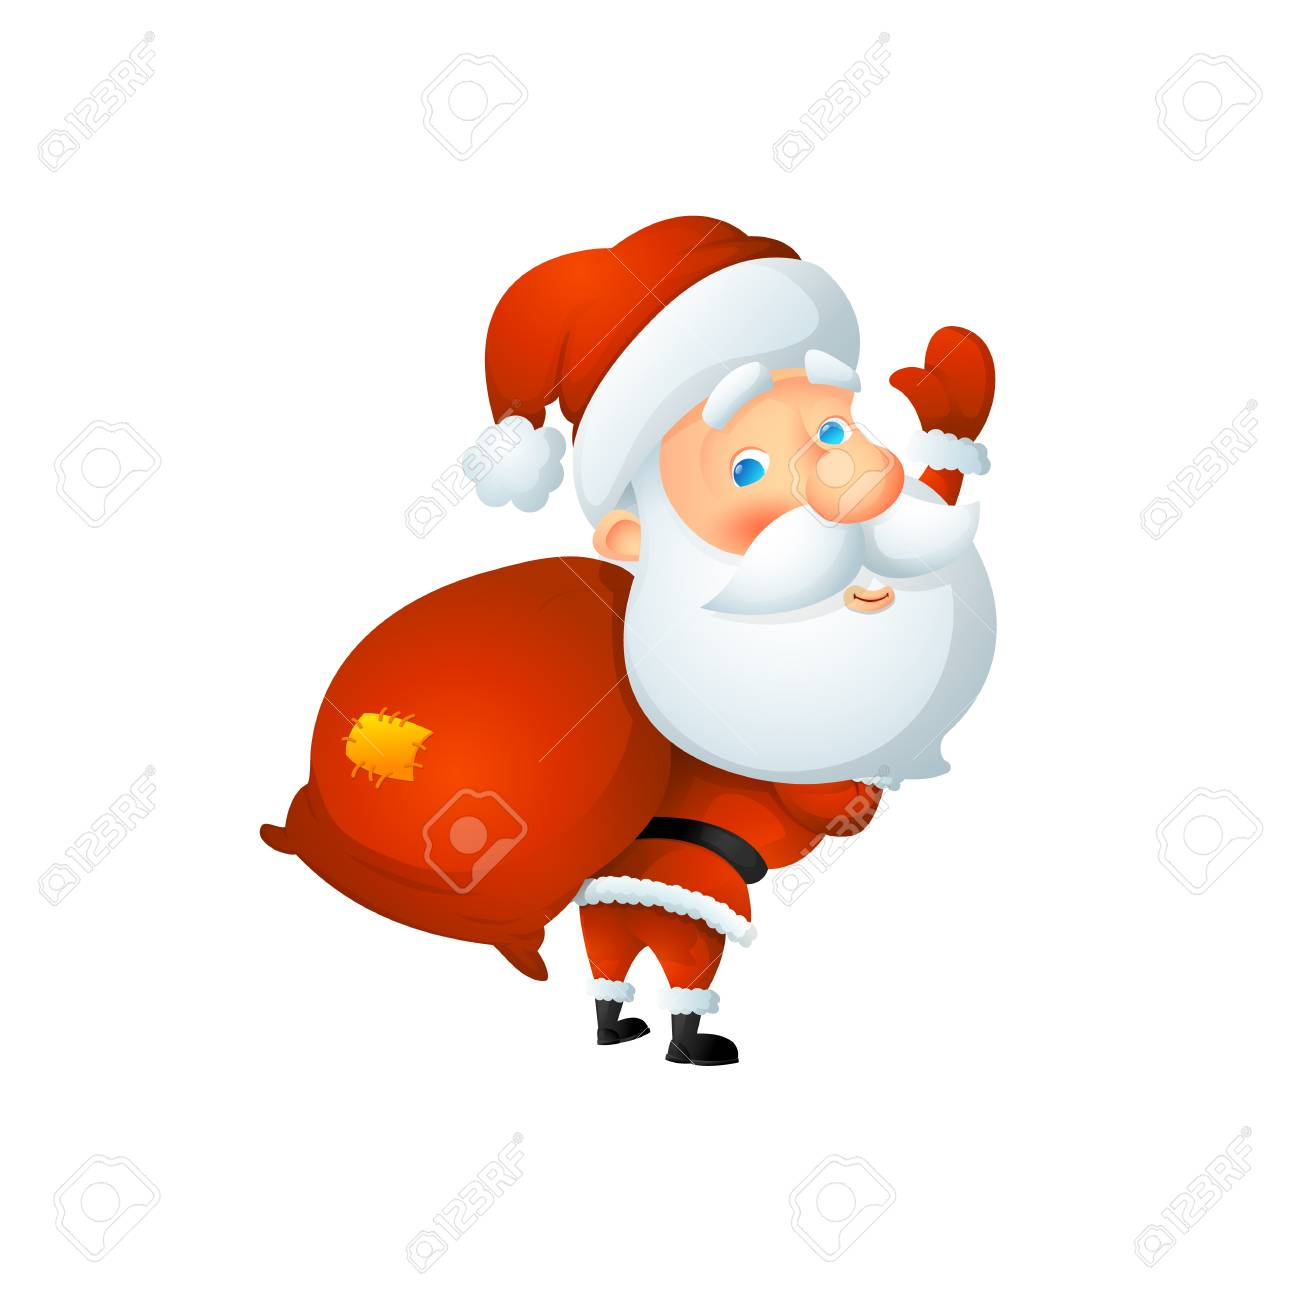 Cartoon cute Santa Claus waving with a bag of gifts behind his back. On a white background, cartoon, vector illustration. - 112717774